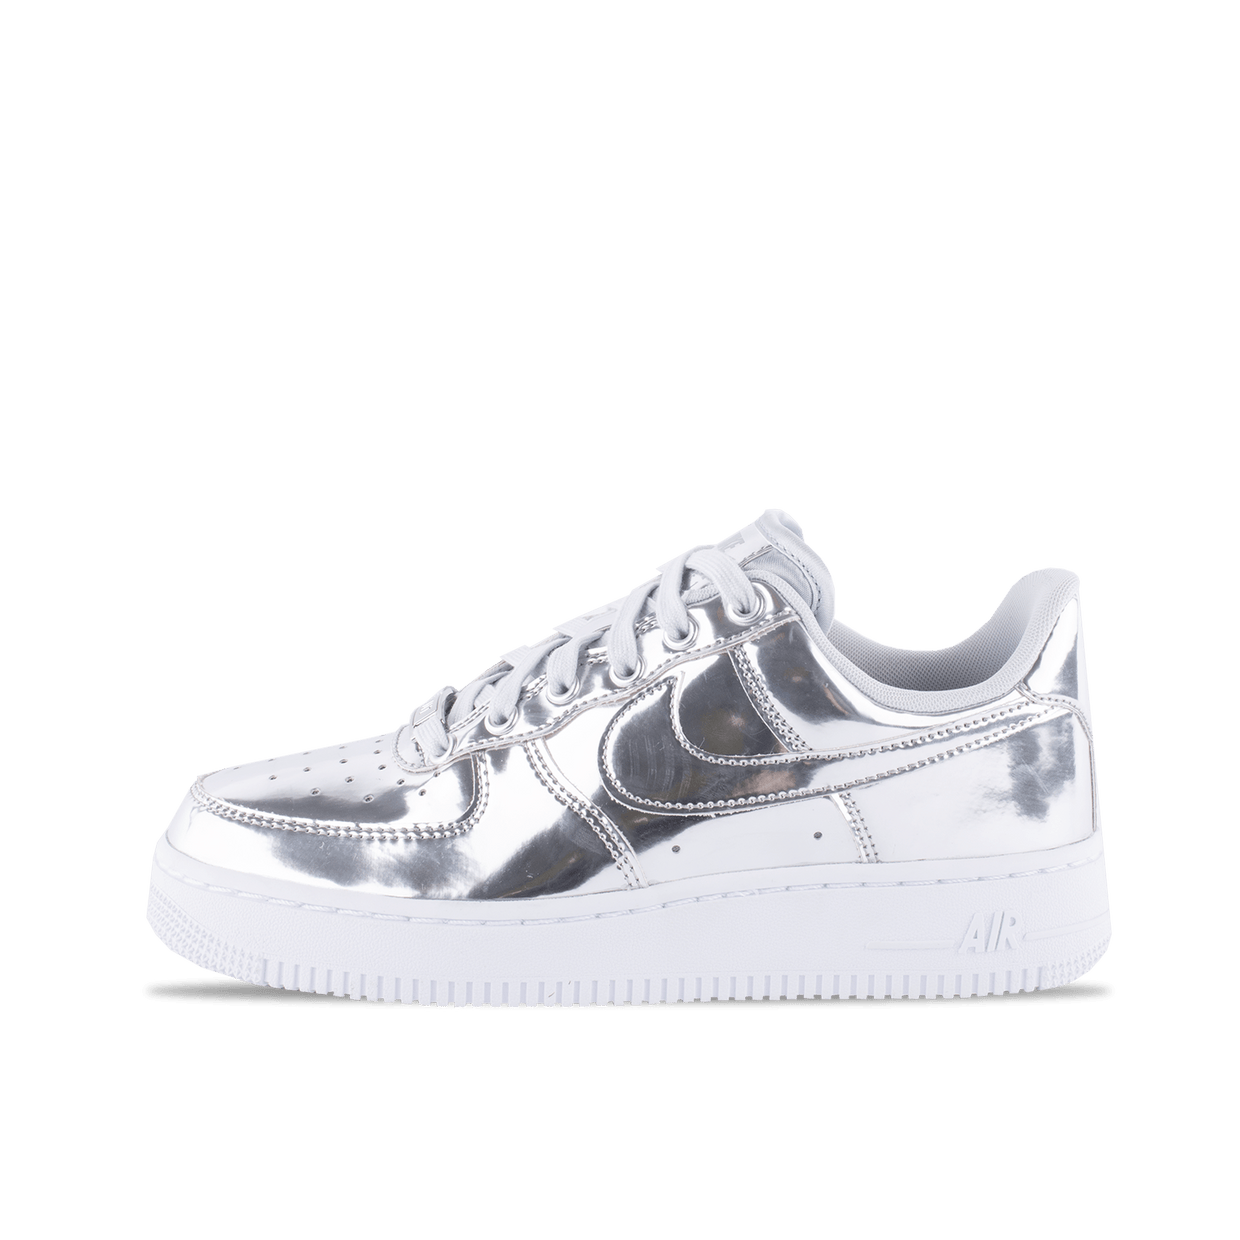 nike air force 1 argentate